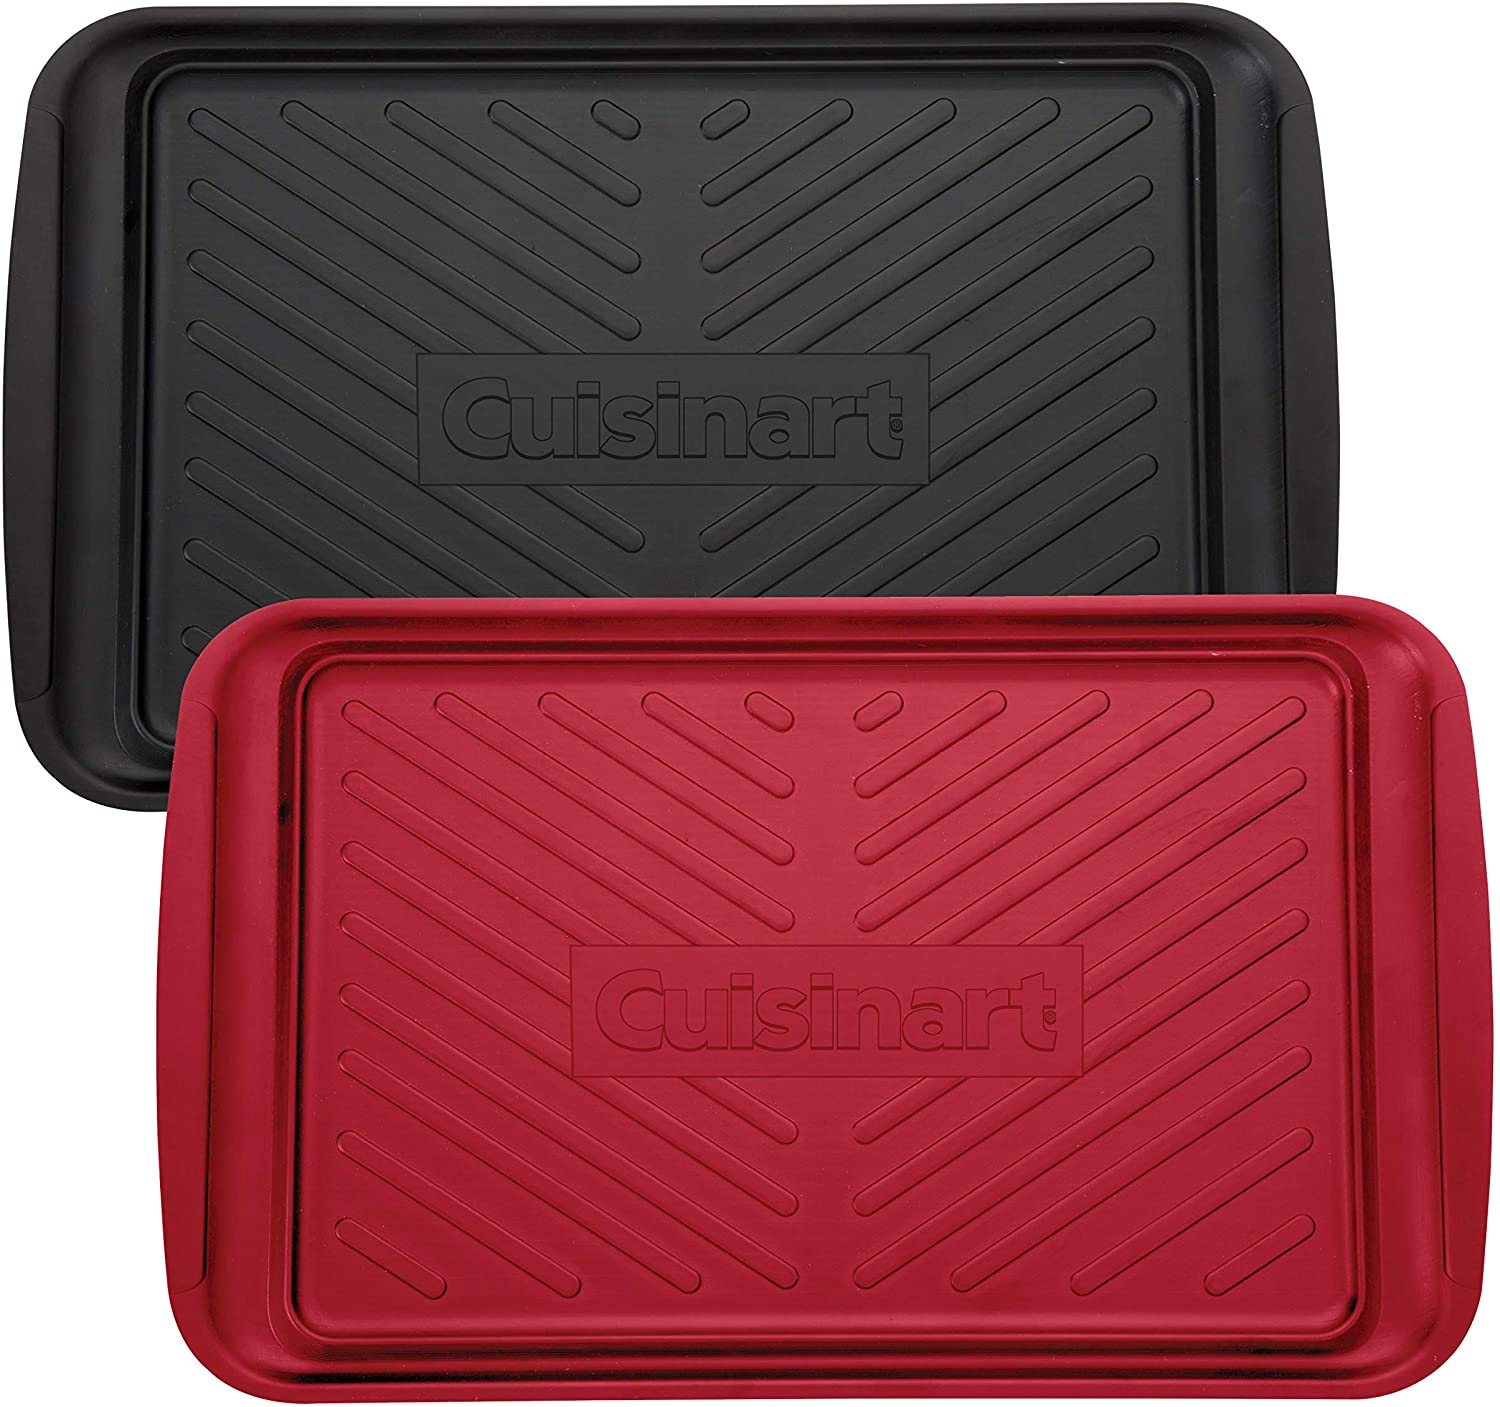 Cuisinart Grilling Prep and Serve Trays